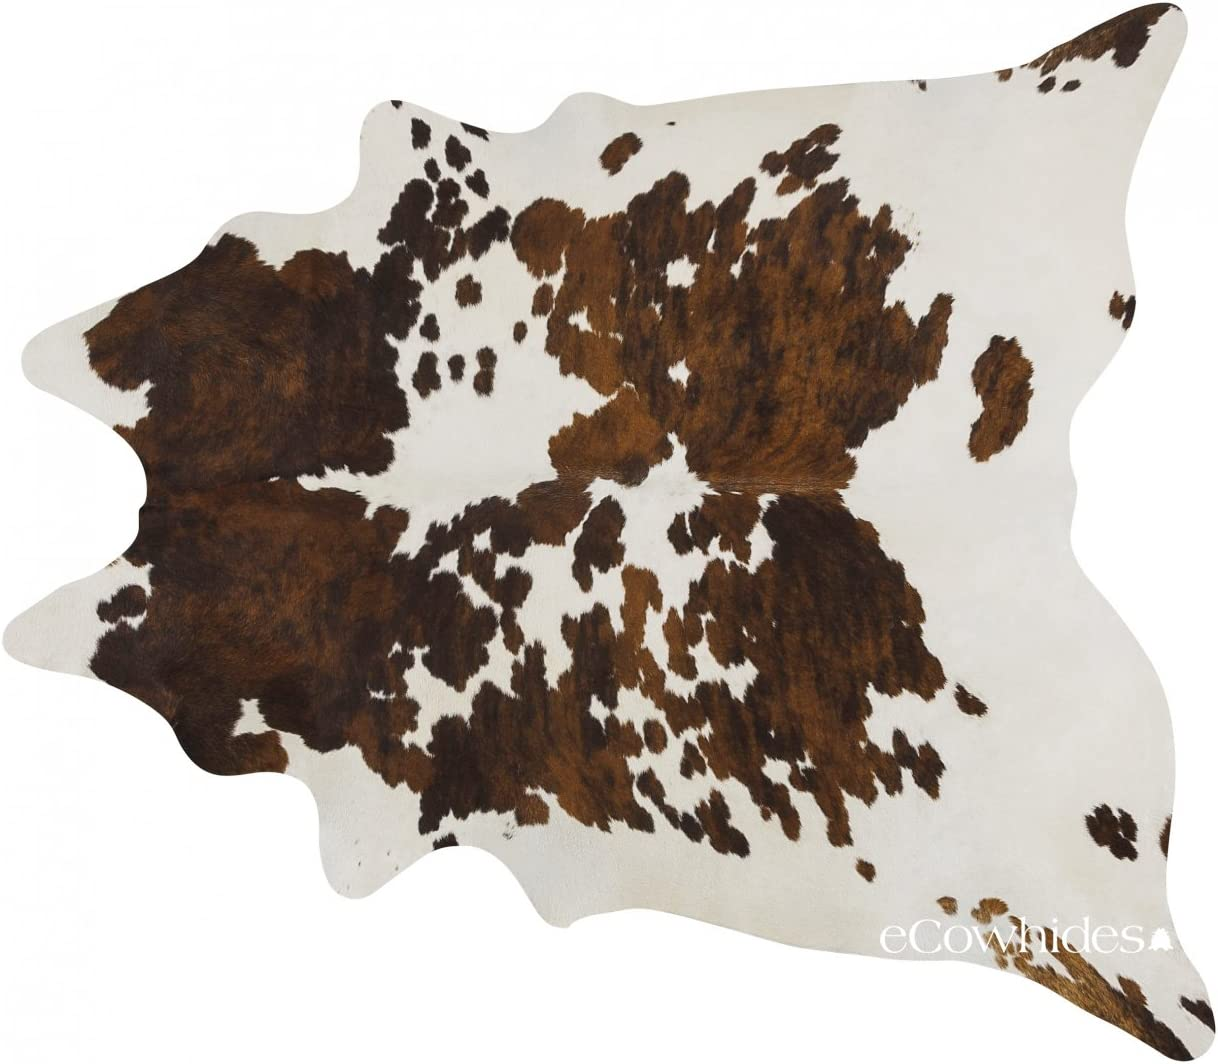 eCowhides Tricolor Brazilian Cowhide Area Rug, Cowskin Leather Hide for Home Living Room XXL